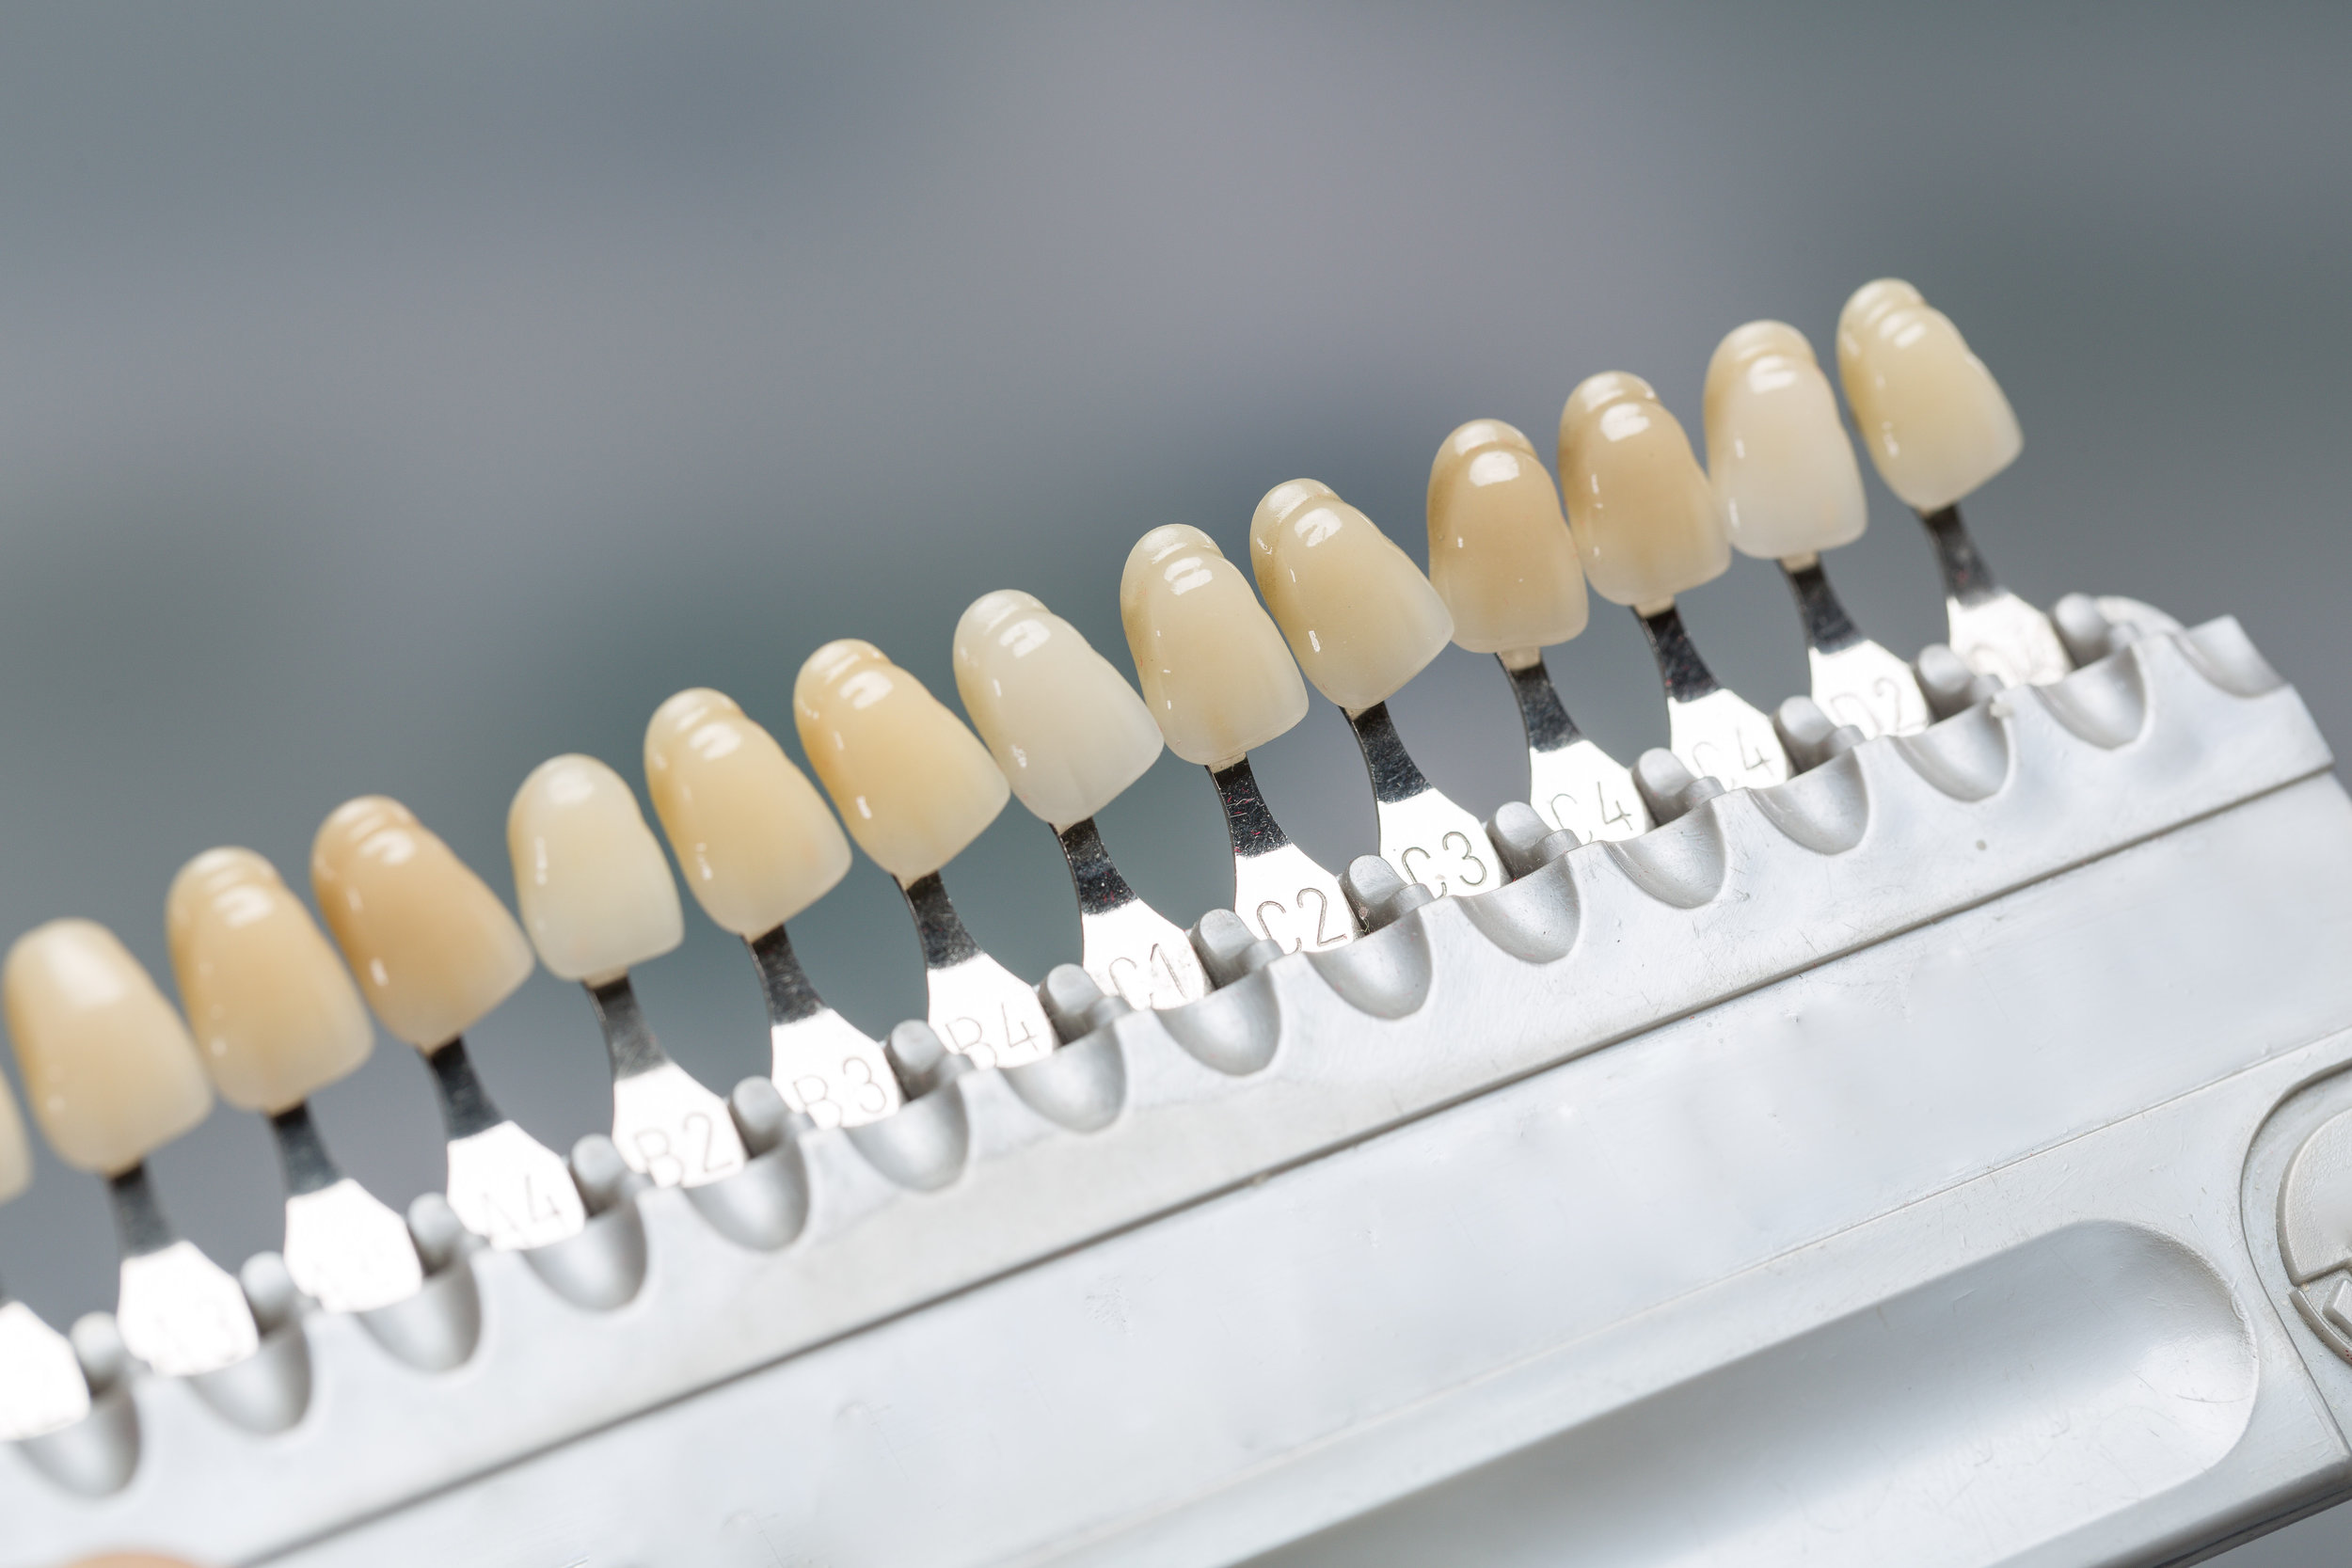 Canva - Close up of shade guide to check veneer of tooth crown in a dental laboratory.jpg